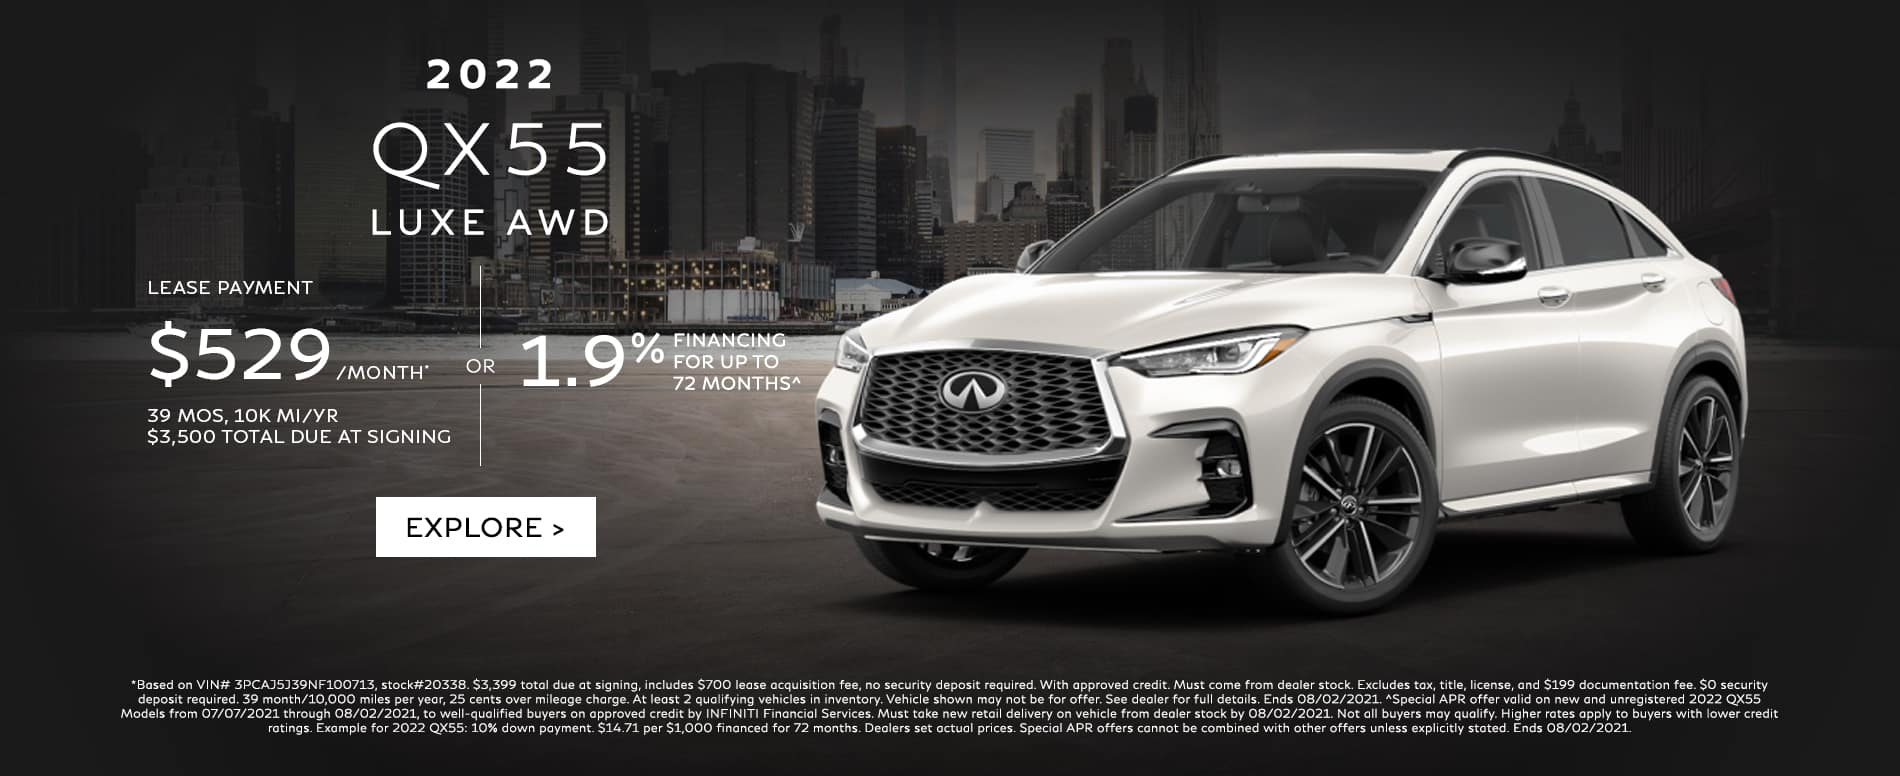 Lease a new 22 QX55 for $529/mo. See dealer for details.